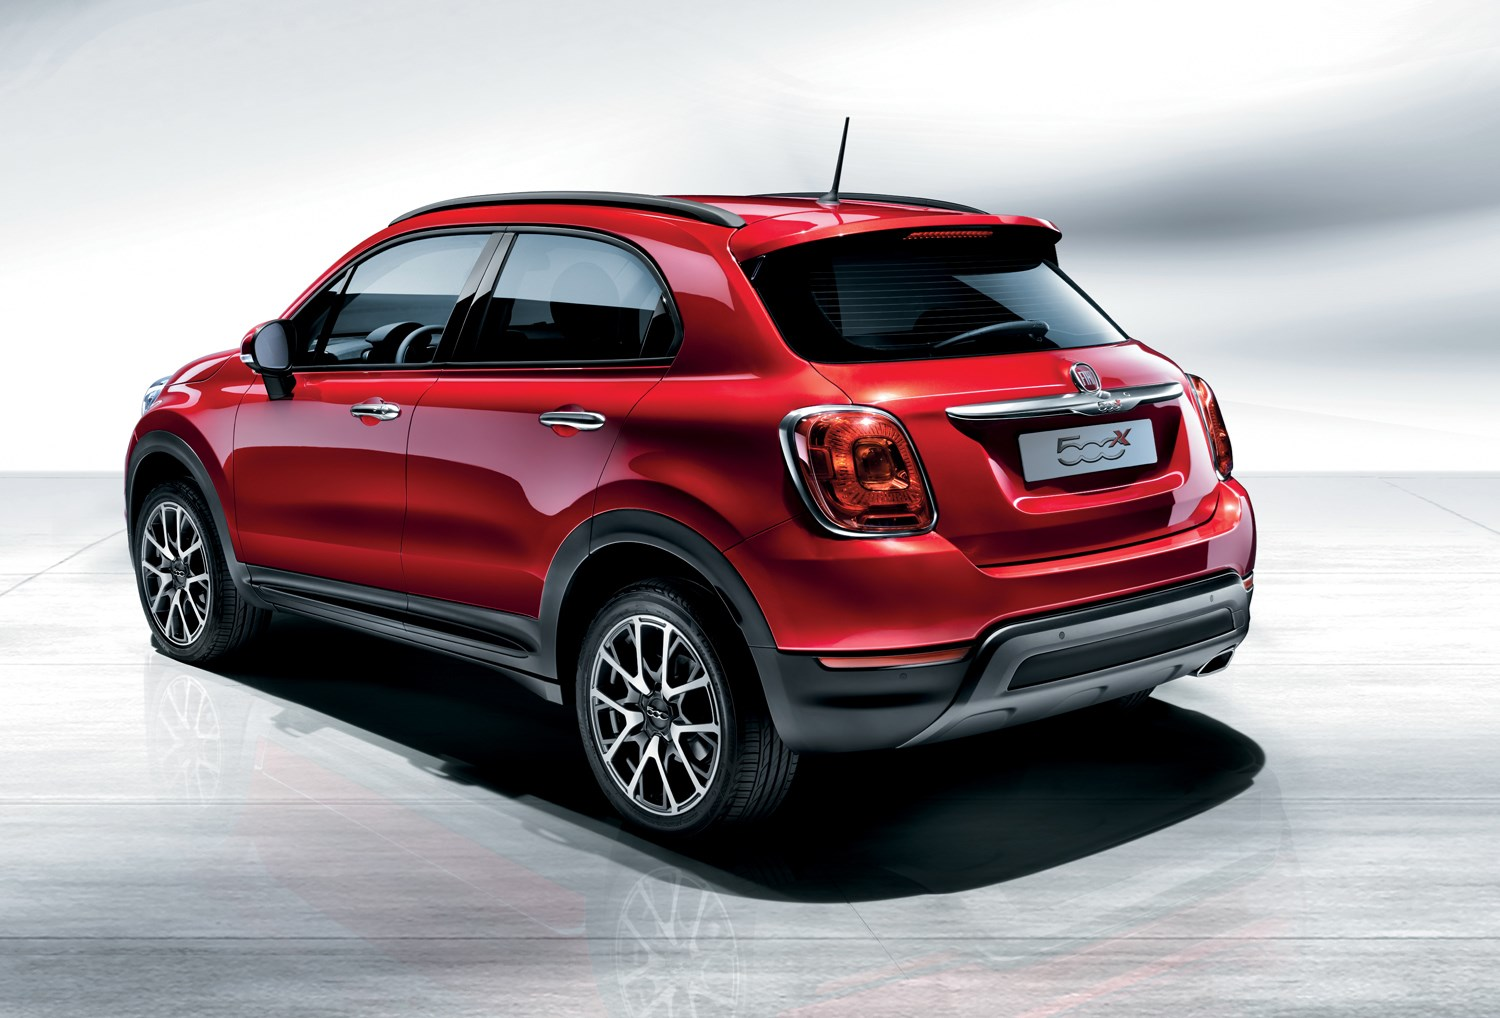 New Fiat 500 For Sale >> Fiat 500X 4x4 Review (2015 - ) | Parkers